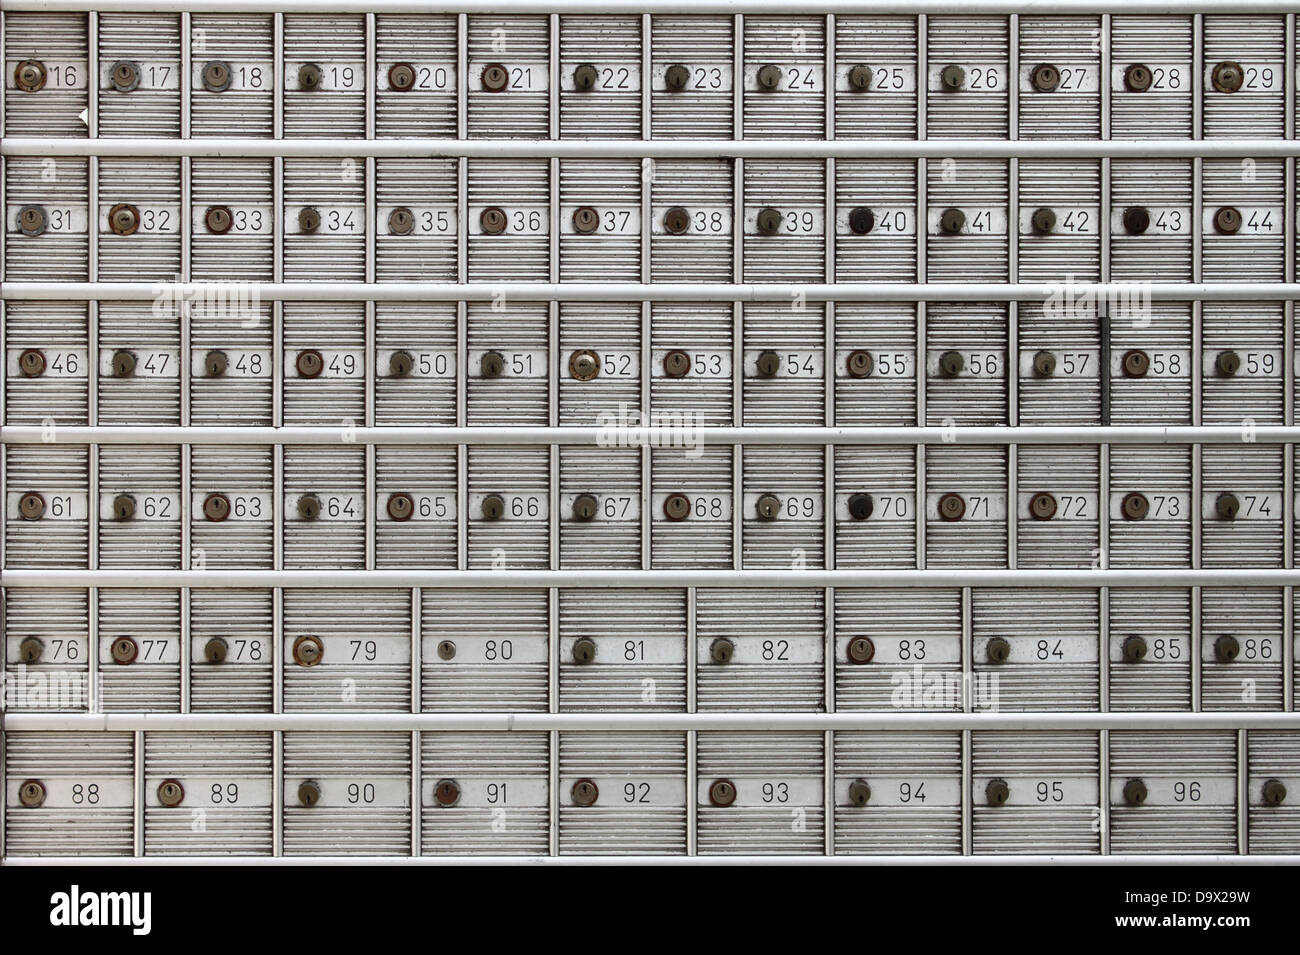 Safe deposit boxes in a bank agency - Stock Image